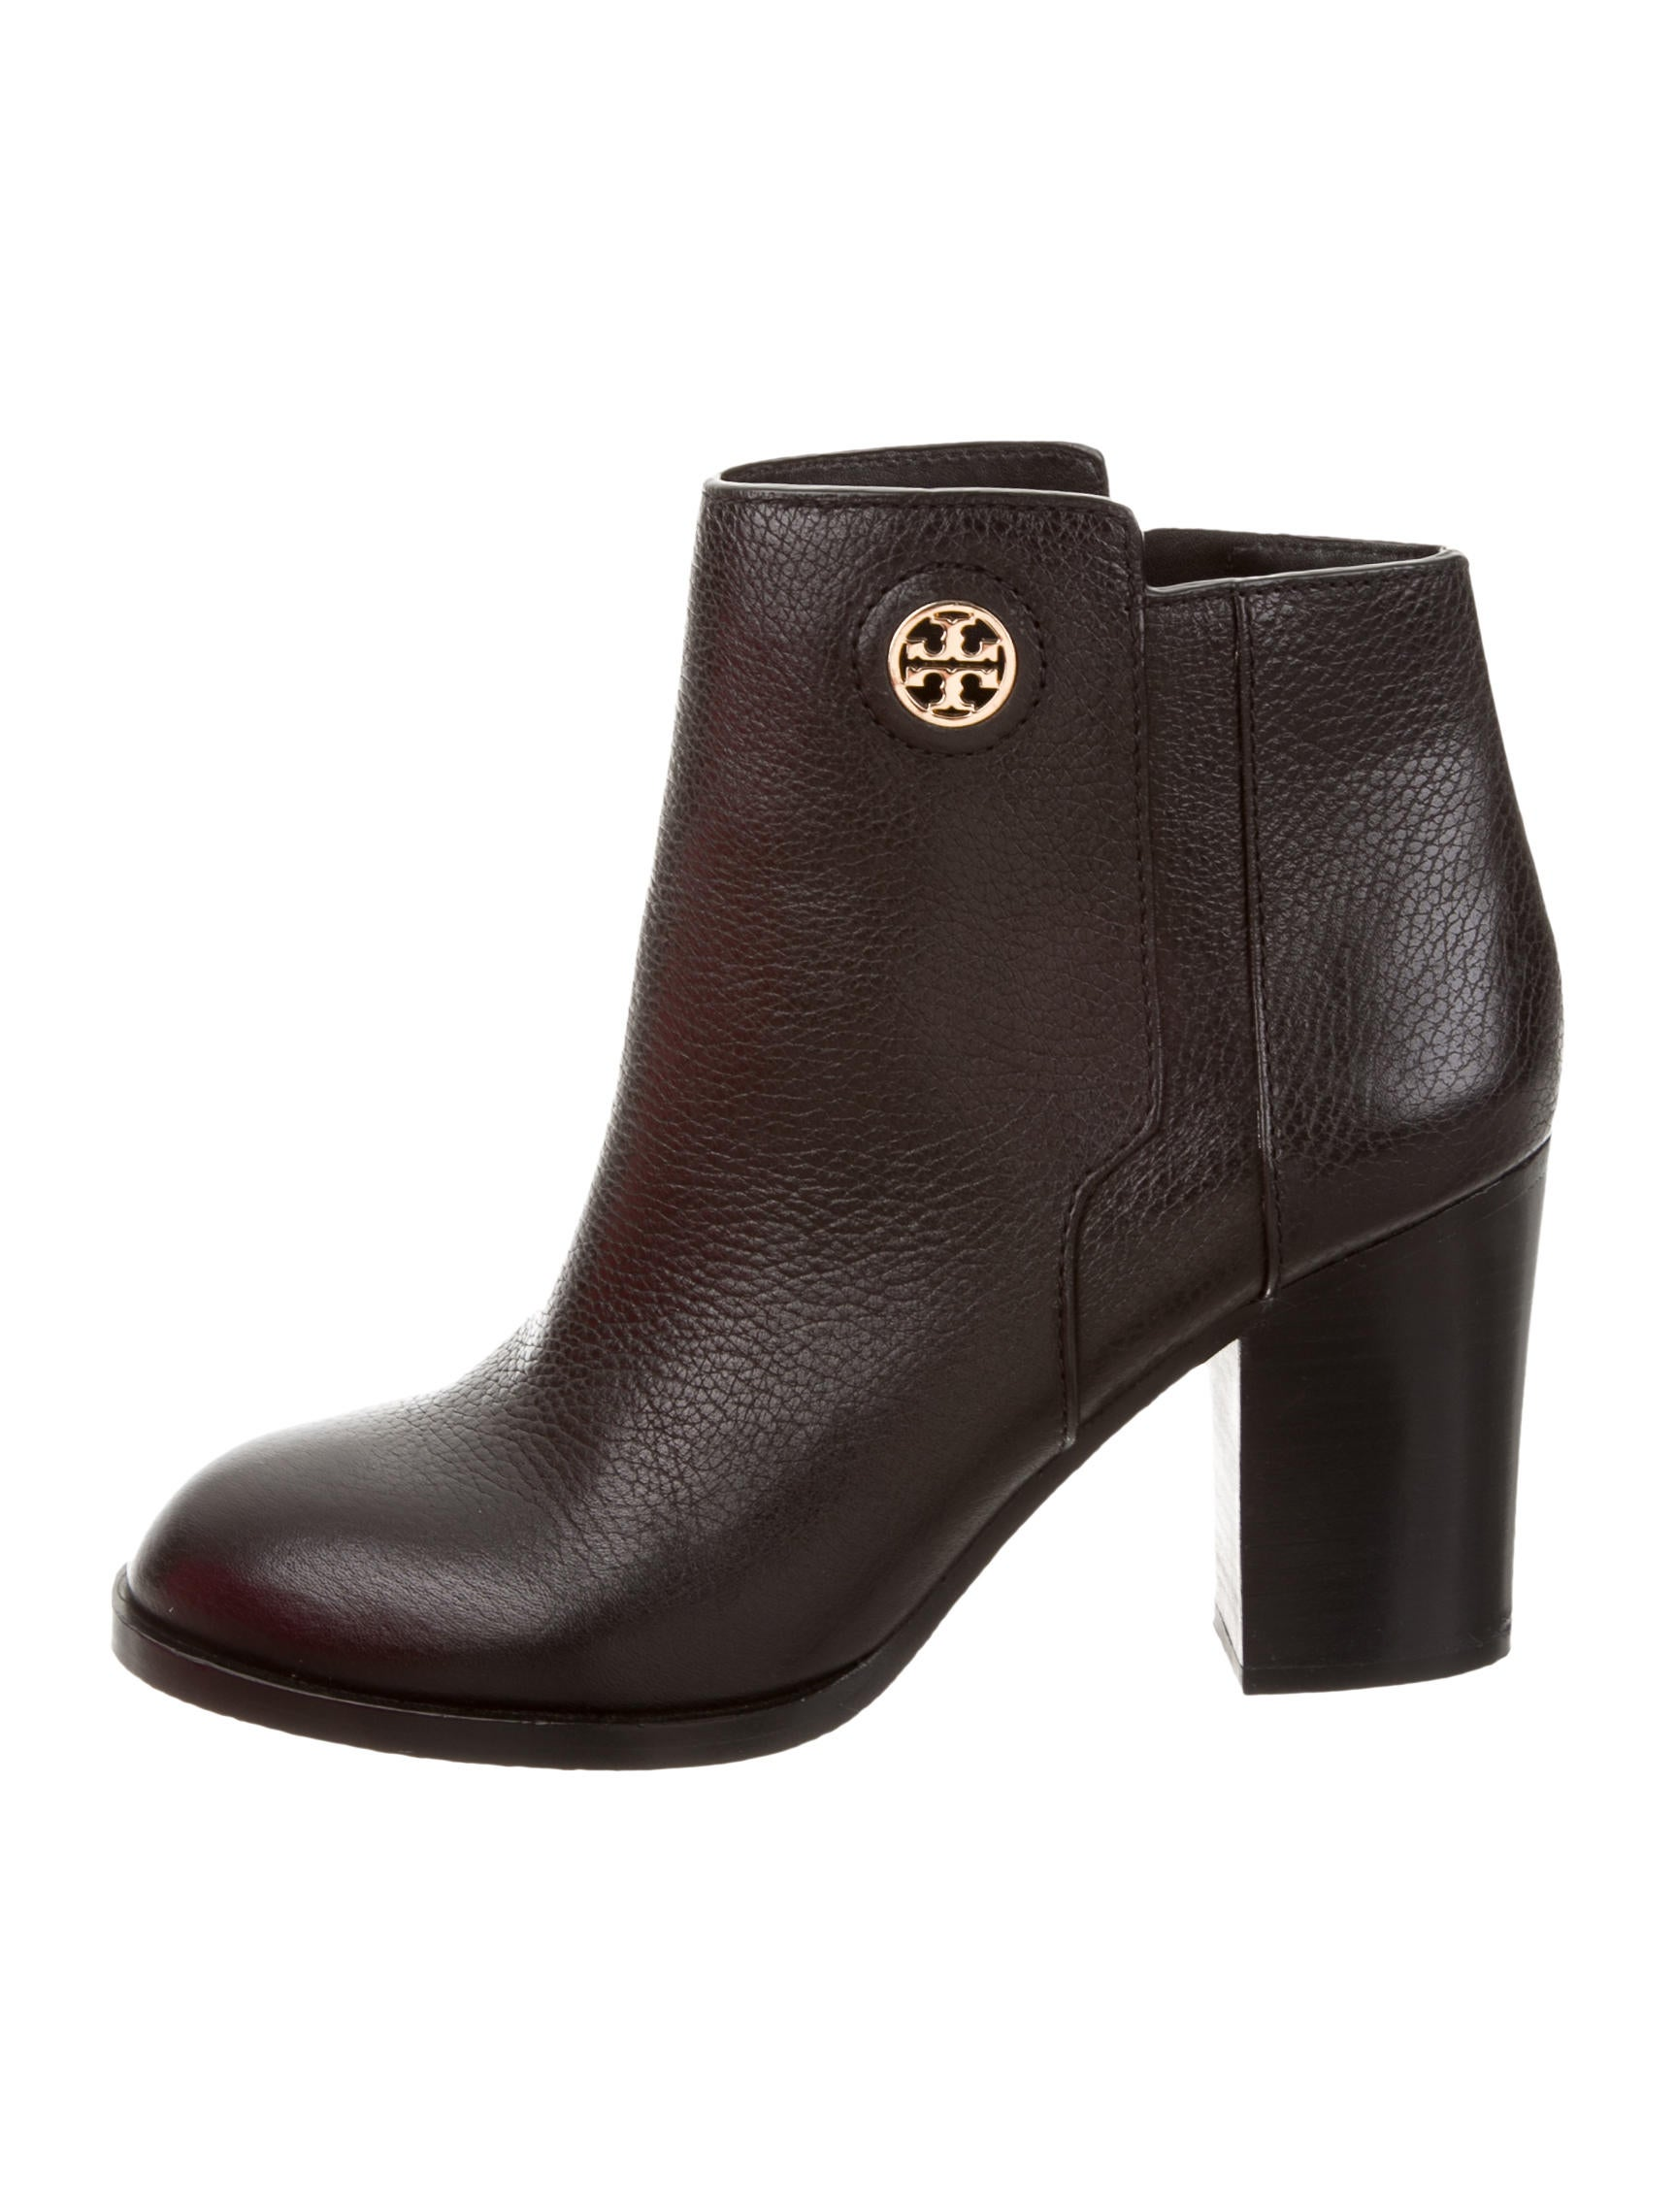 f19e401cfd57 Tory Burch Junction 85MM Booties - Shoes - WTO78633